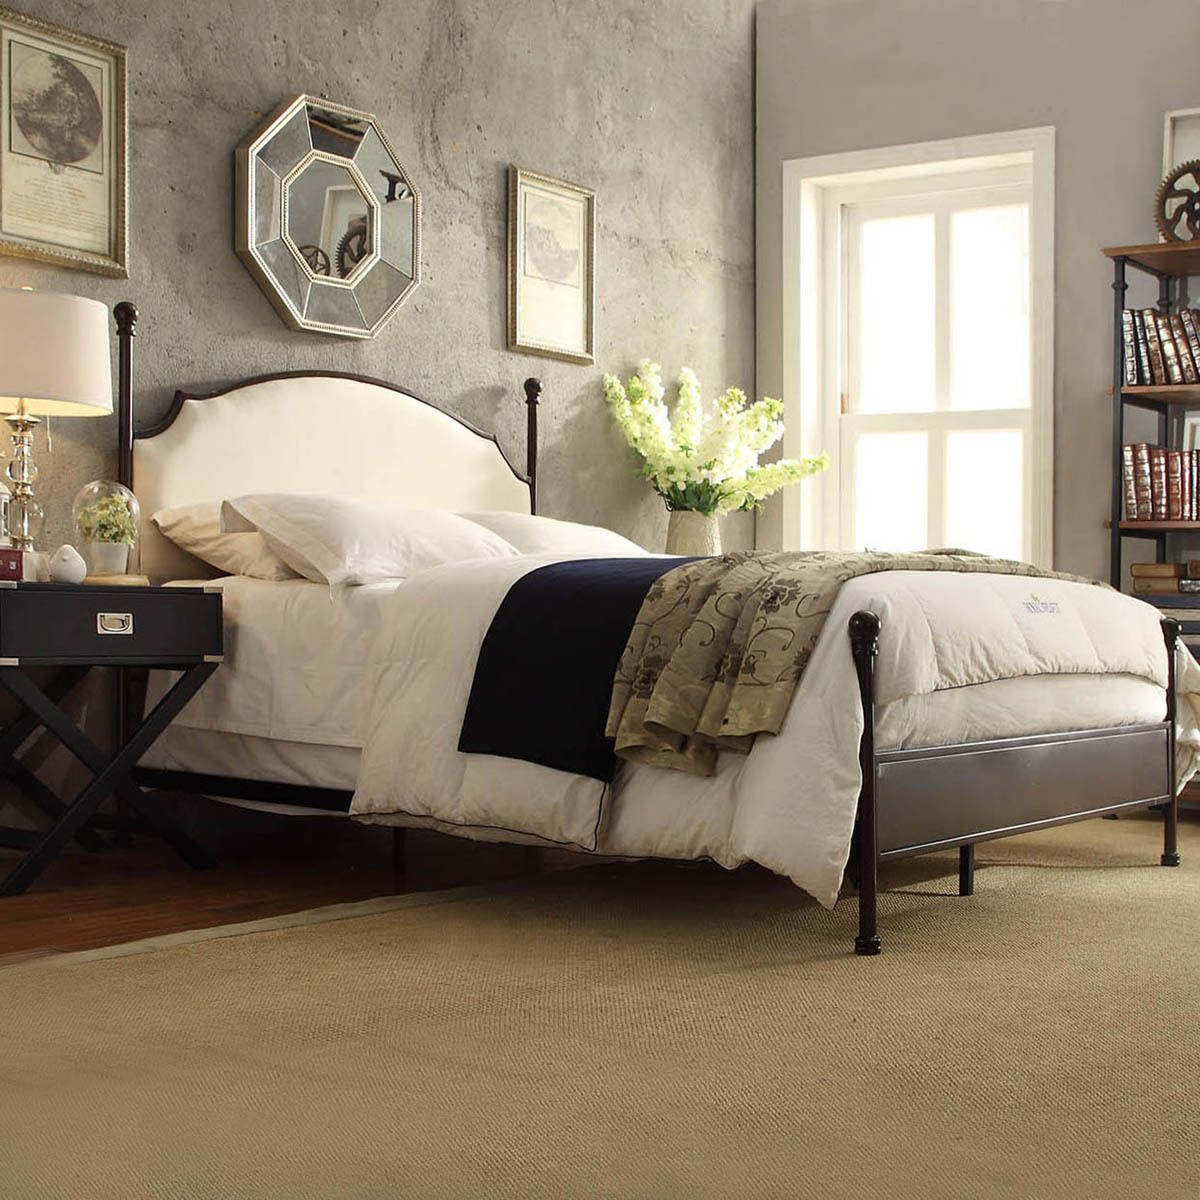 Andover Cream Curved Top Cherry Brown Metal Poster Bed by iNSPIRE Q Classic  by iNSPIRE Q. Master BedroomsGuest ...